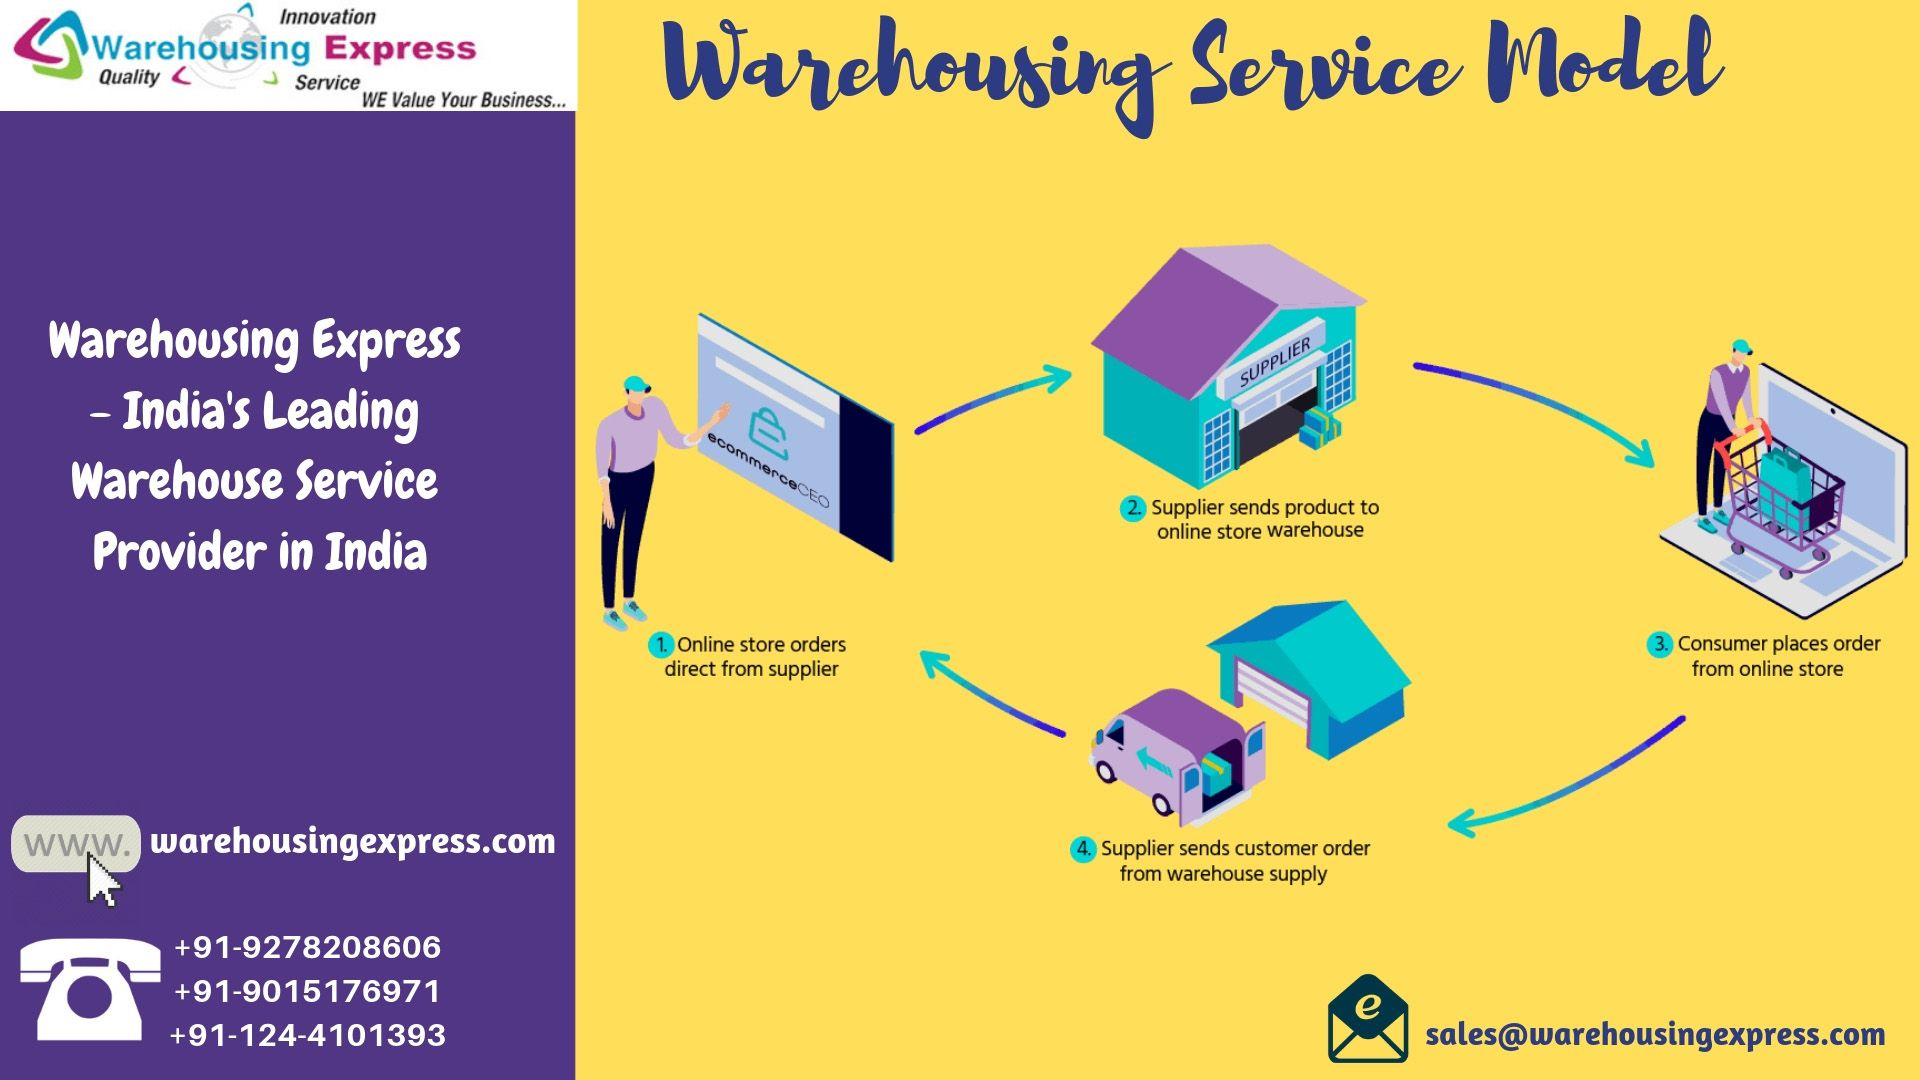 Our model is new generation and automated, Warehousing Express